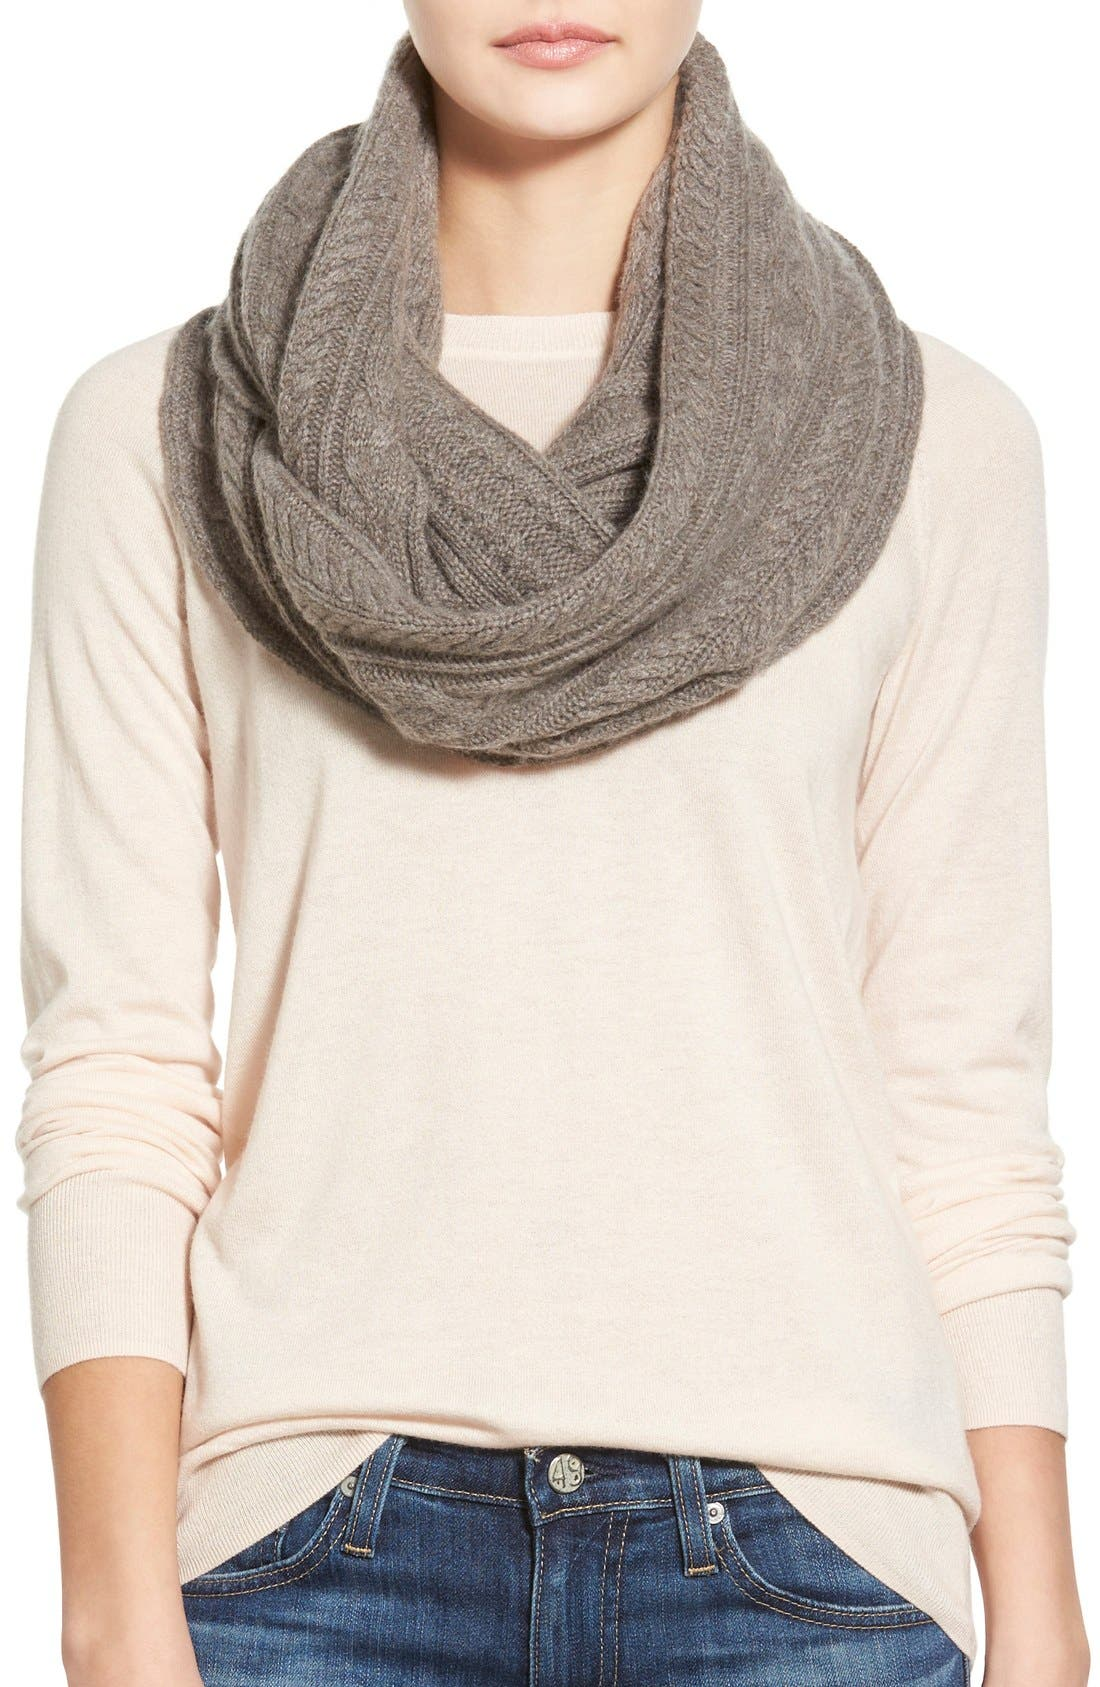 Alternate Image 1 Selected - James Perse Cashmere Infinity Scarf